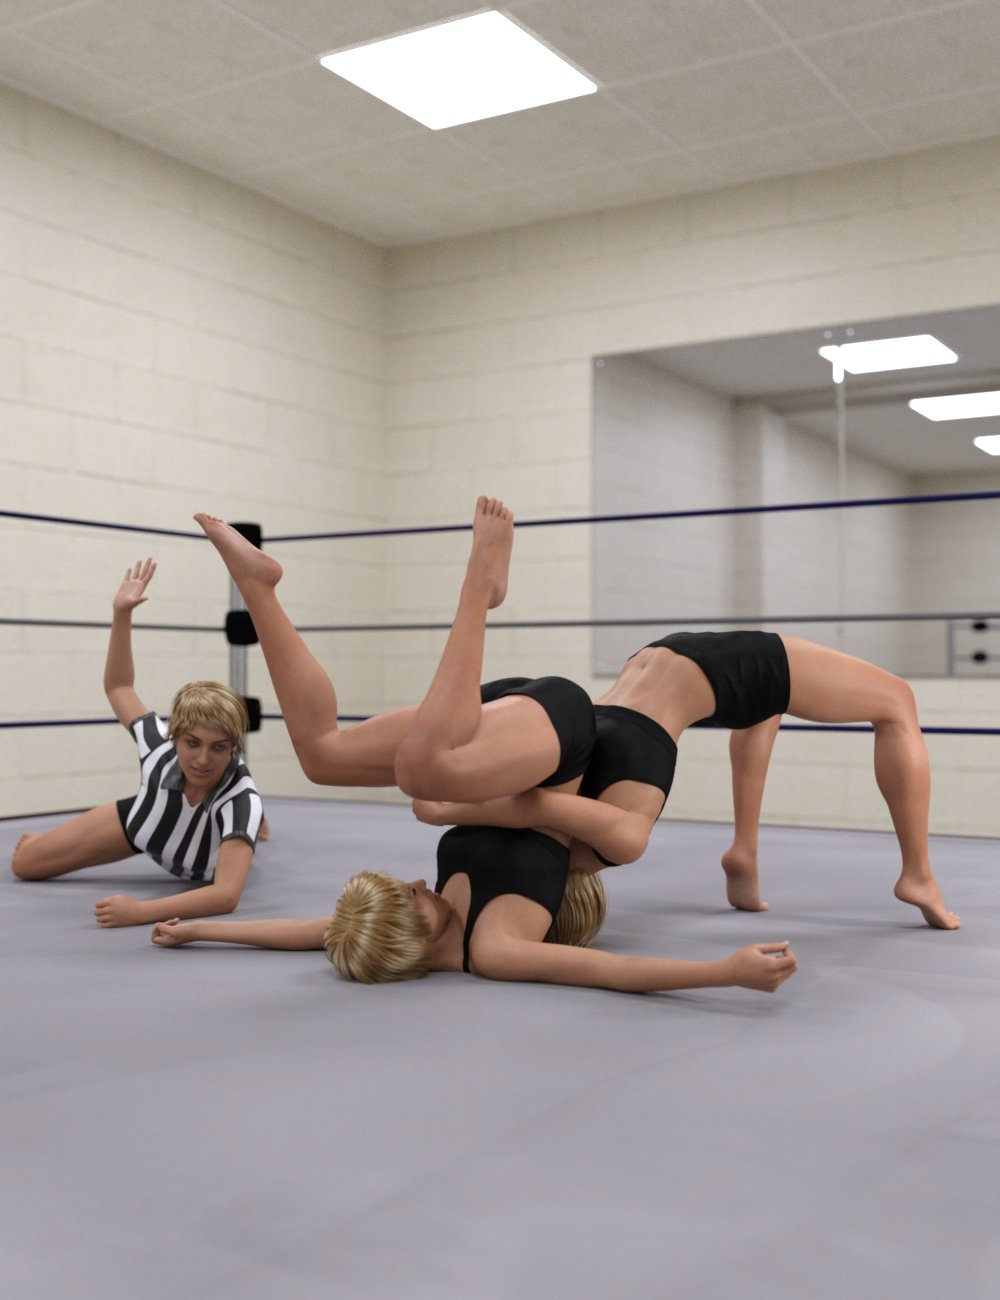 Pro Style Wrestling Poses for Genesis 8 Female by: Scuffles3d, 3D Models by Daz 3D